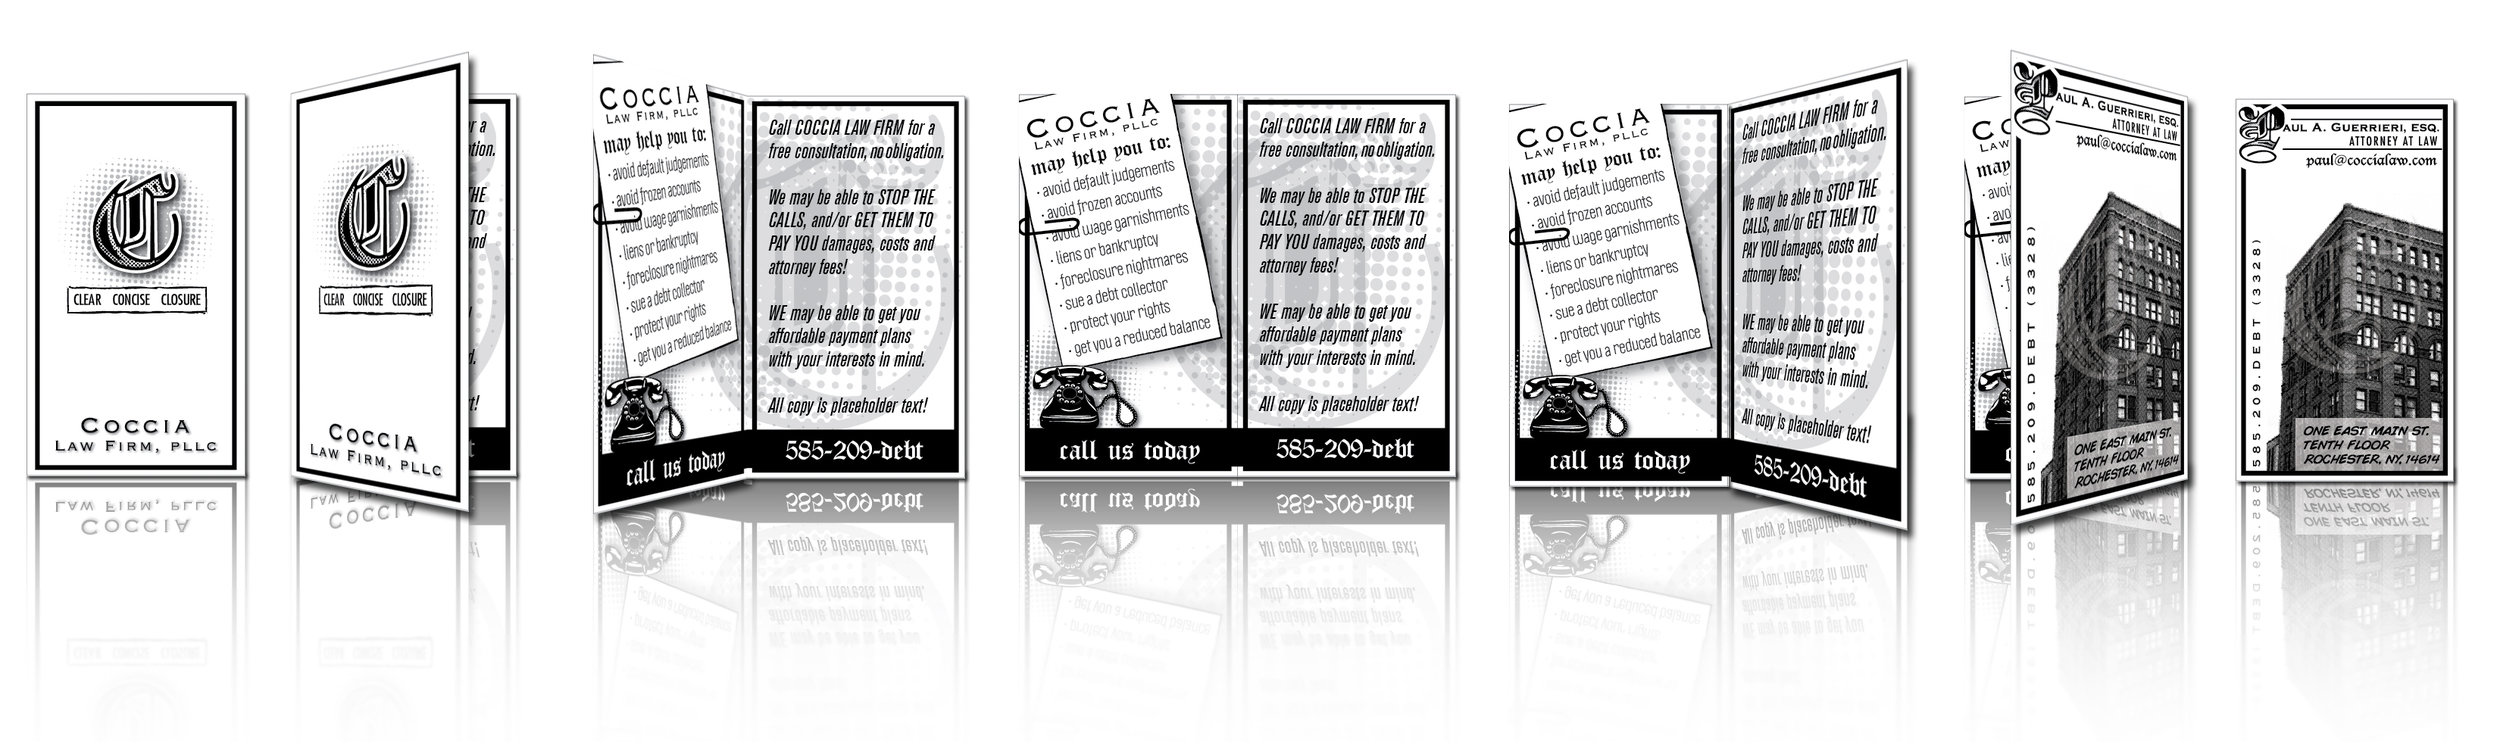 """""""panoramic"""" unfolding of multi-sided business cards for Coccia Law Firm, PLLC. (Left to right) Front of card, centerfold, back of business card with contact info, personalized for each legal rep."""